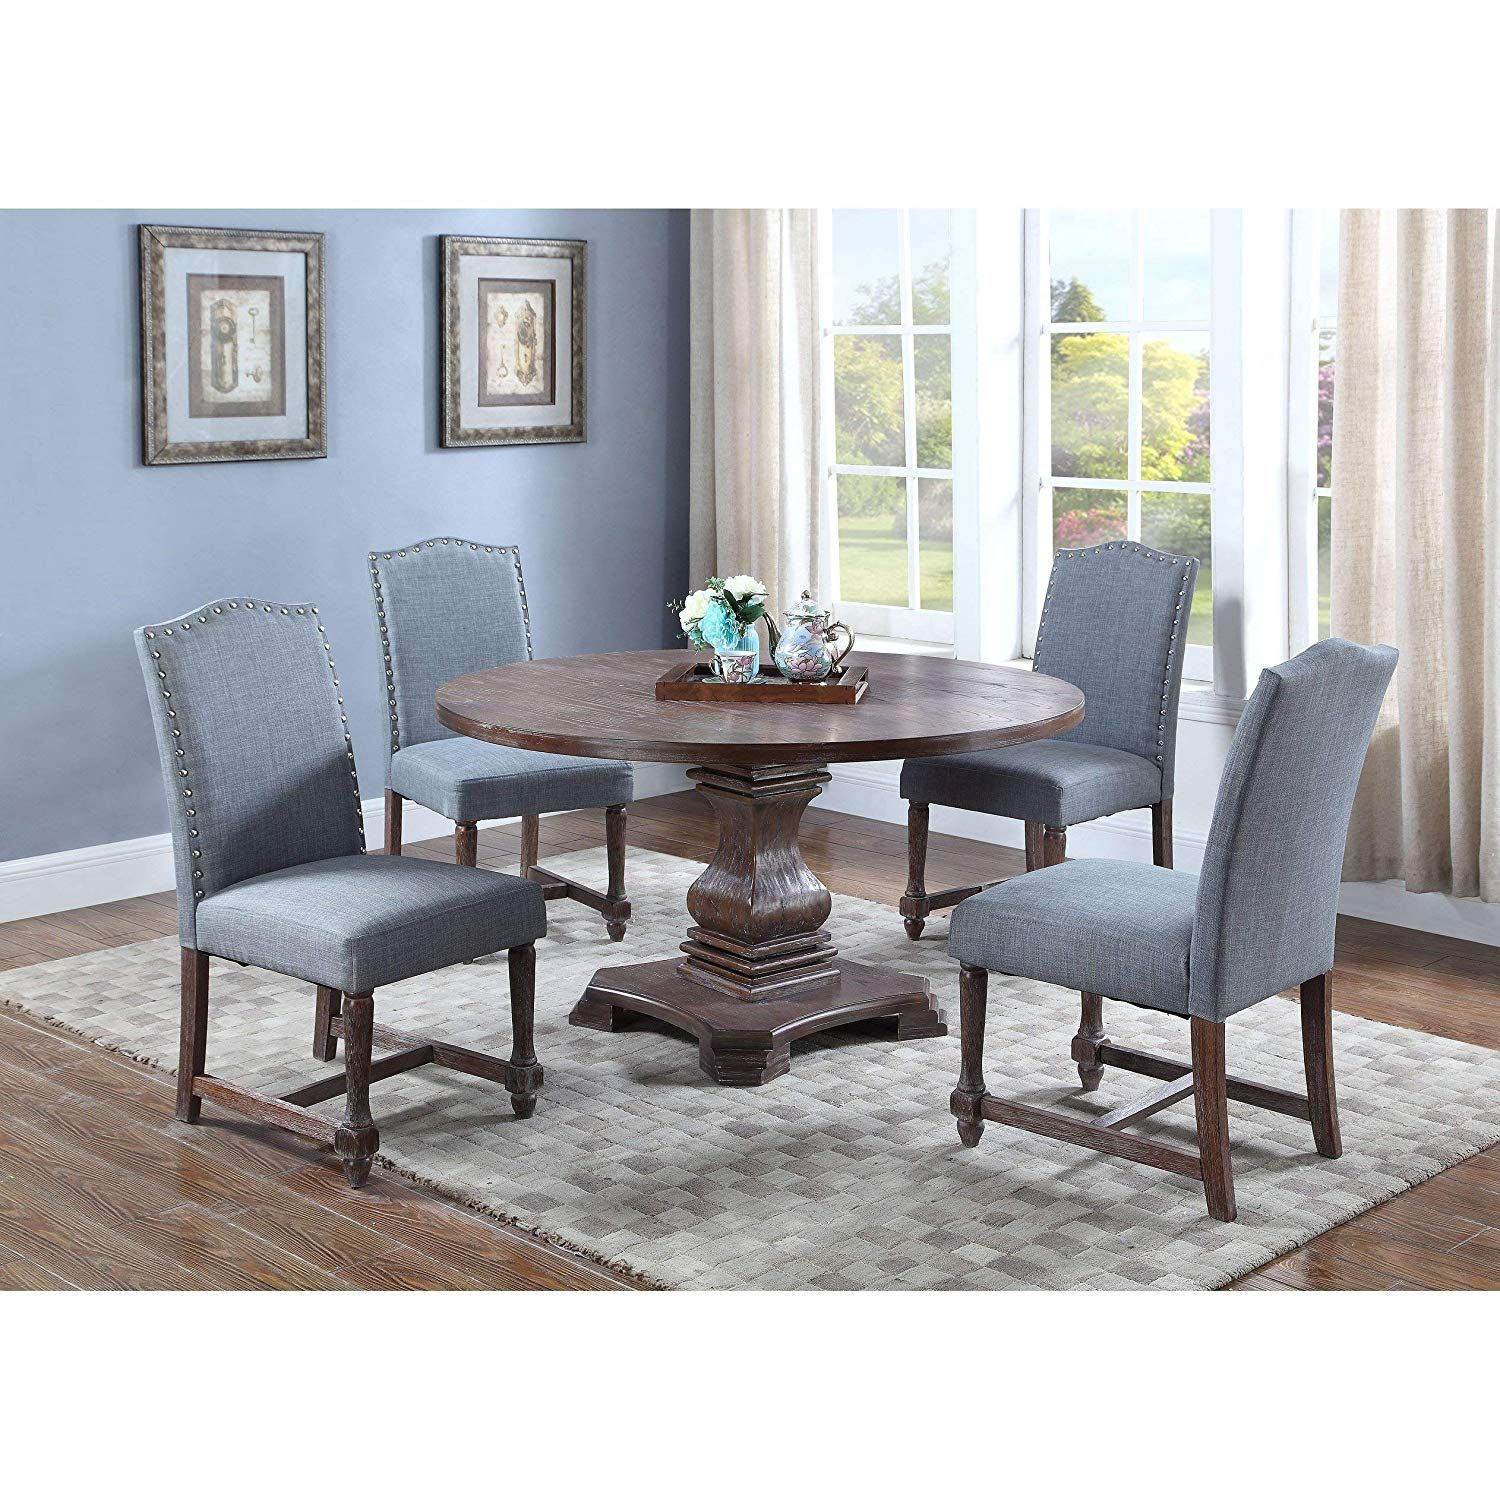 Amazon Com Best Master Furniture M084 Ellisburg Wooden 5 Piece